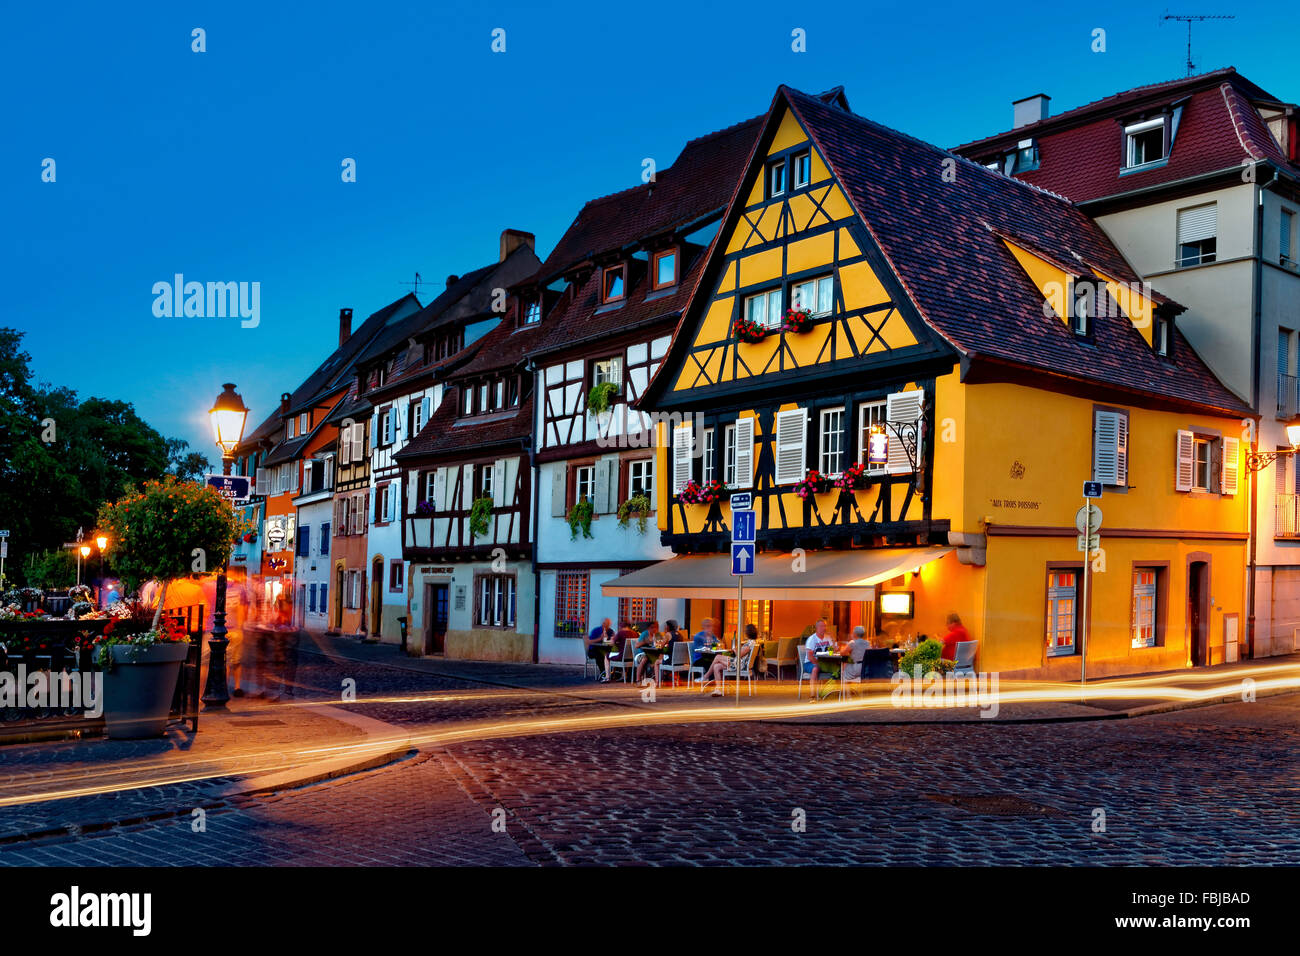 school road in mulhouse france stock photo 93217109 alamy. Black Bedroom Furniture Sets. Home Design Ideas